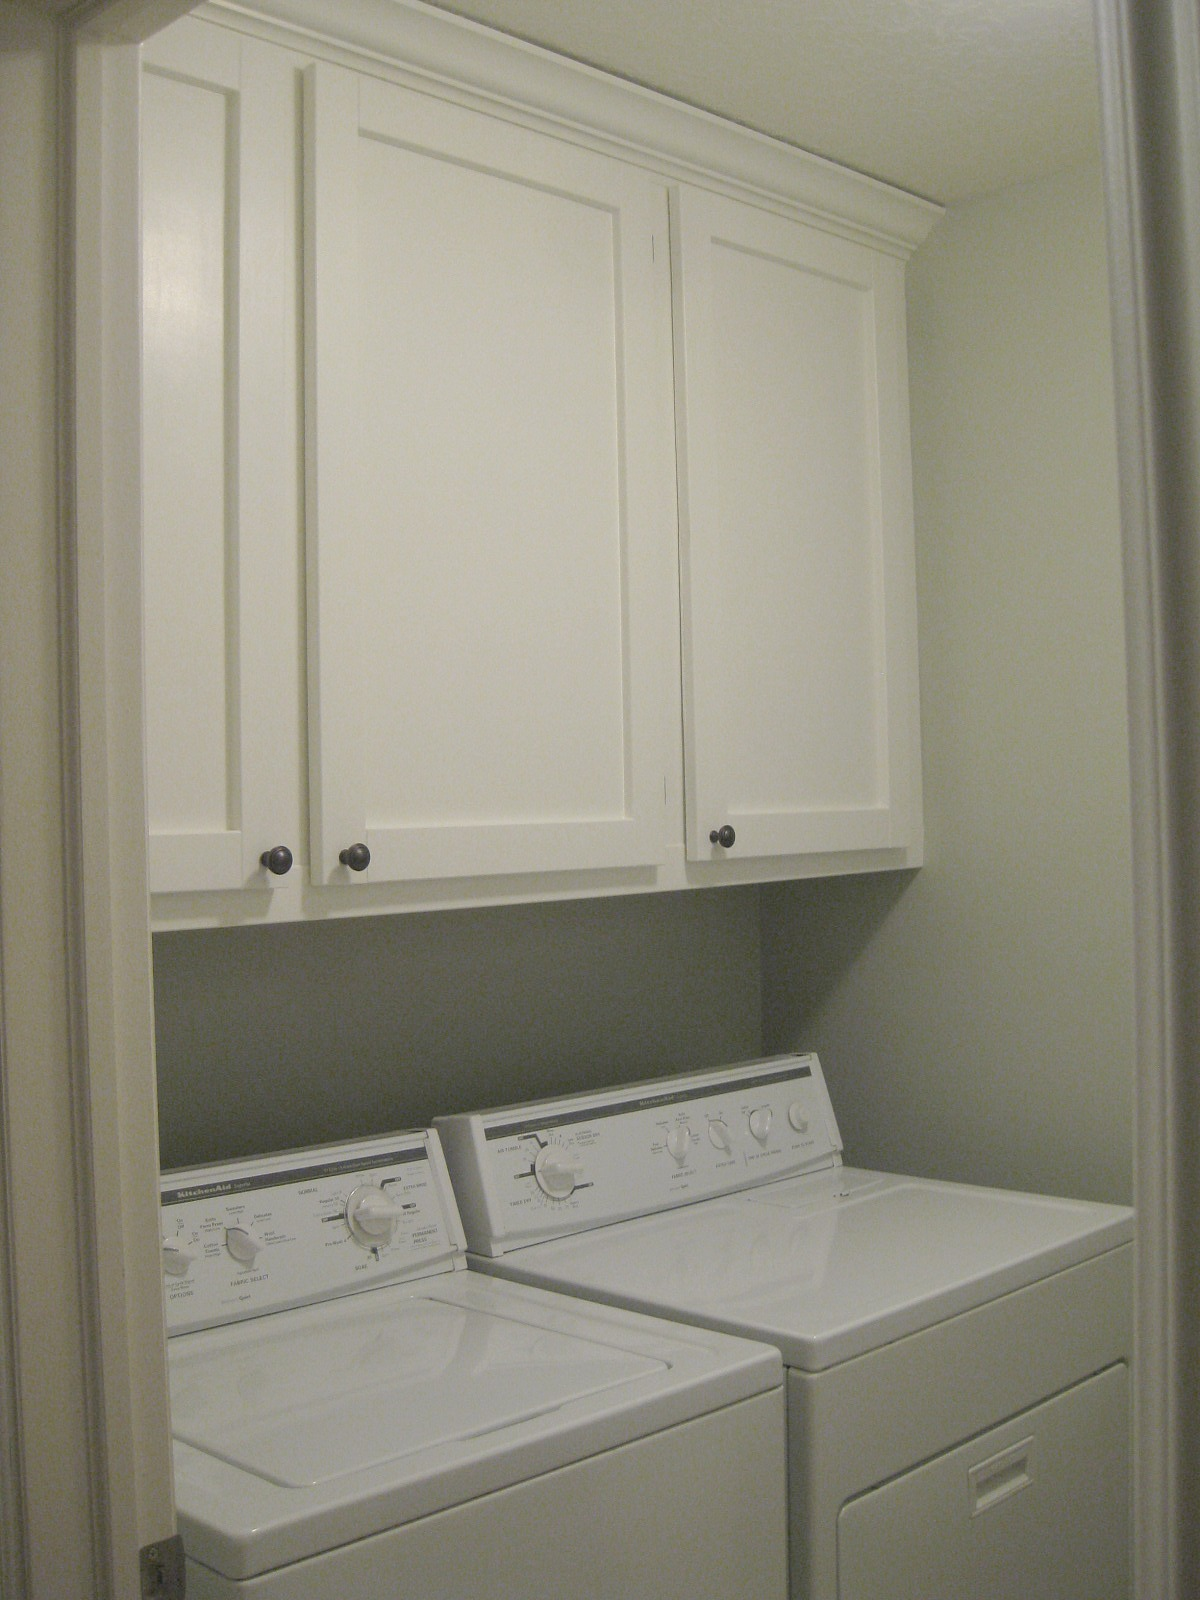 TDA decorating and design: Laundry Room Cabinet Tutorial ... on Laundry Room Cabinets Ideas  id=23150